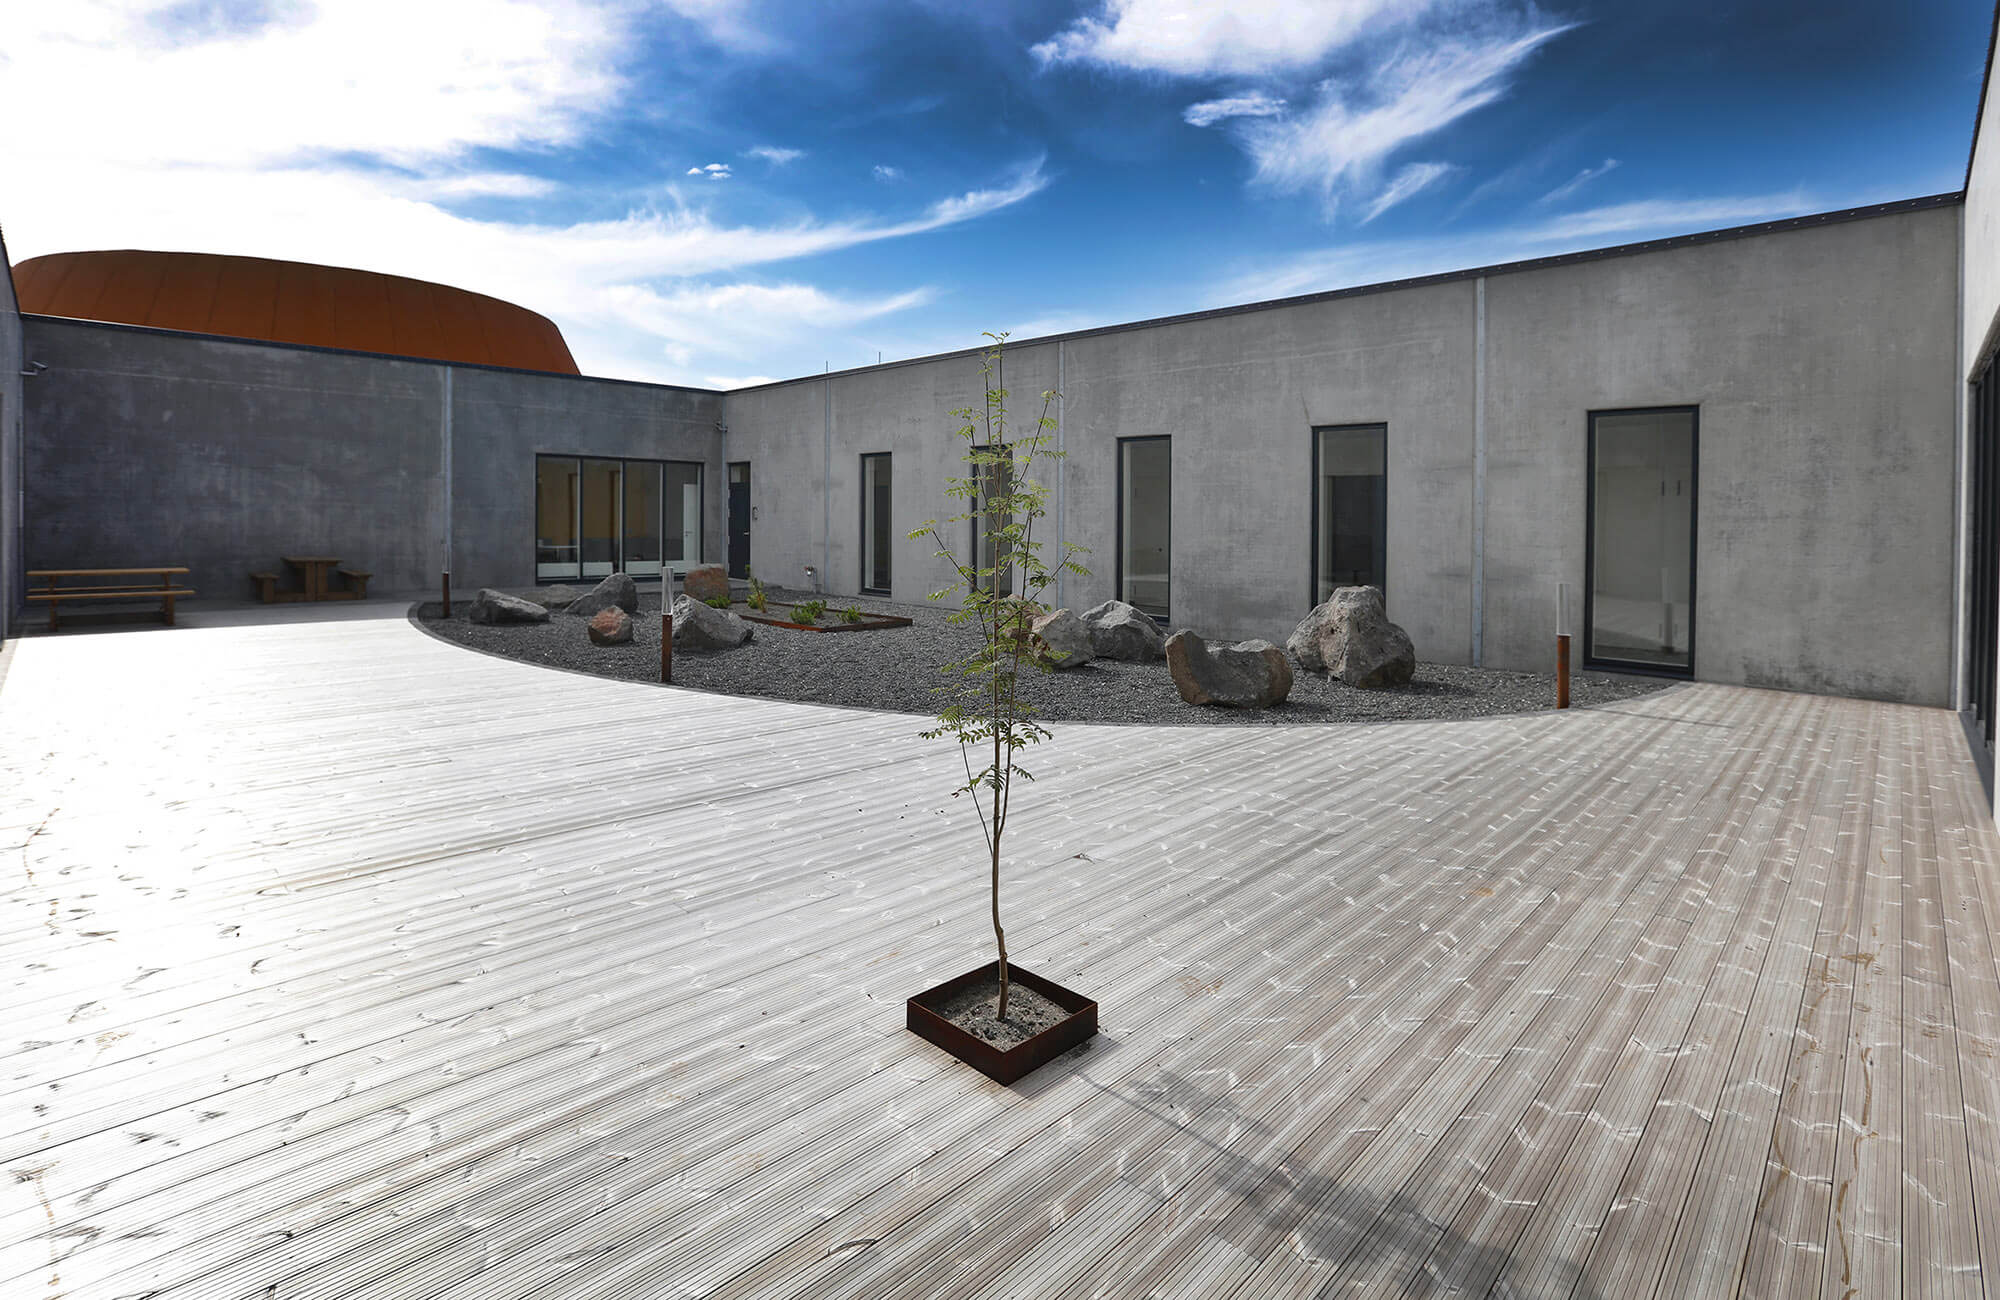 Can sustainability form part of prison design? Yes, say the team at Arkis arkitektar.